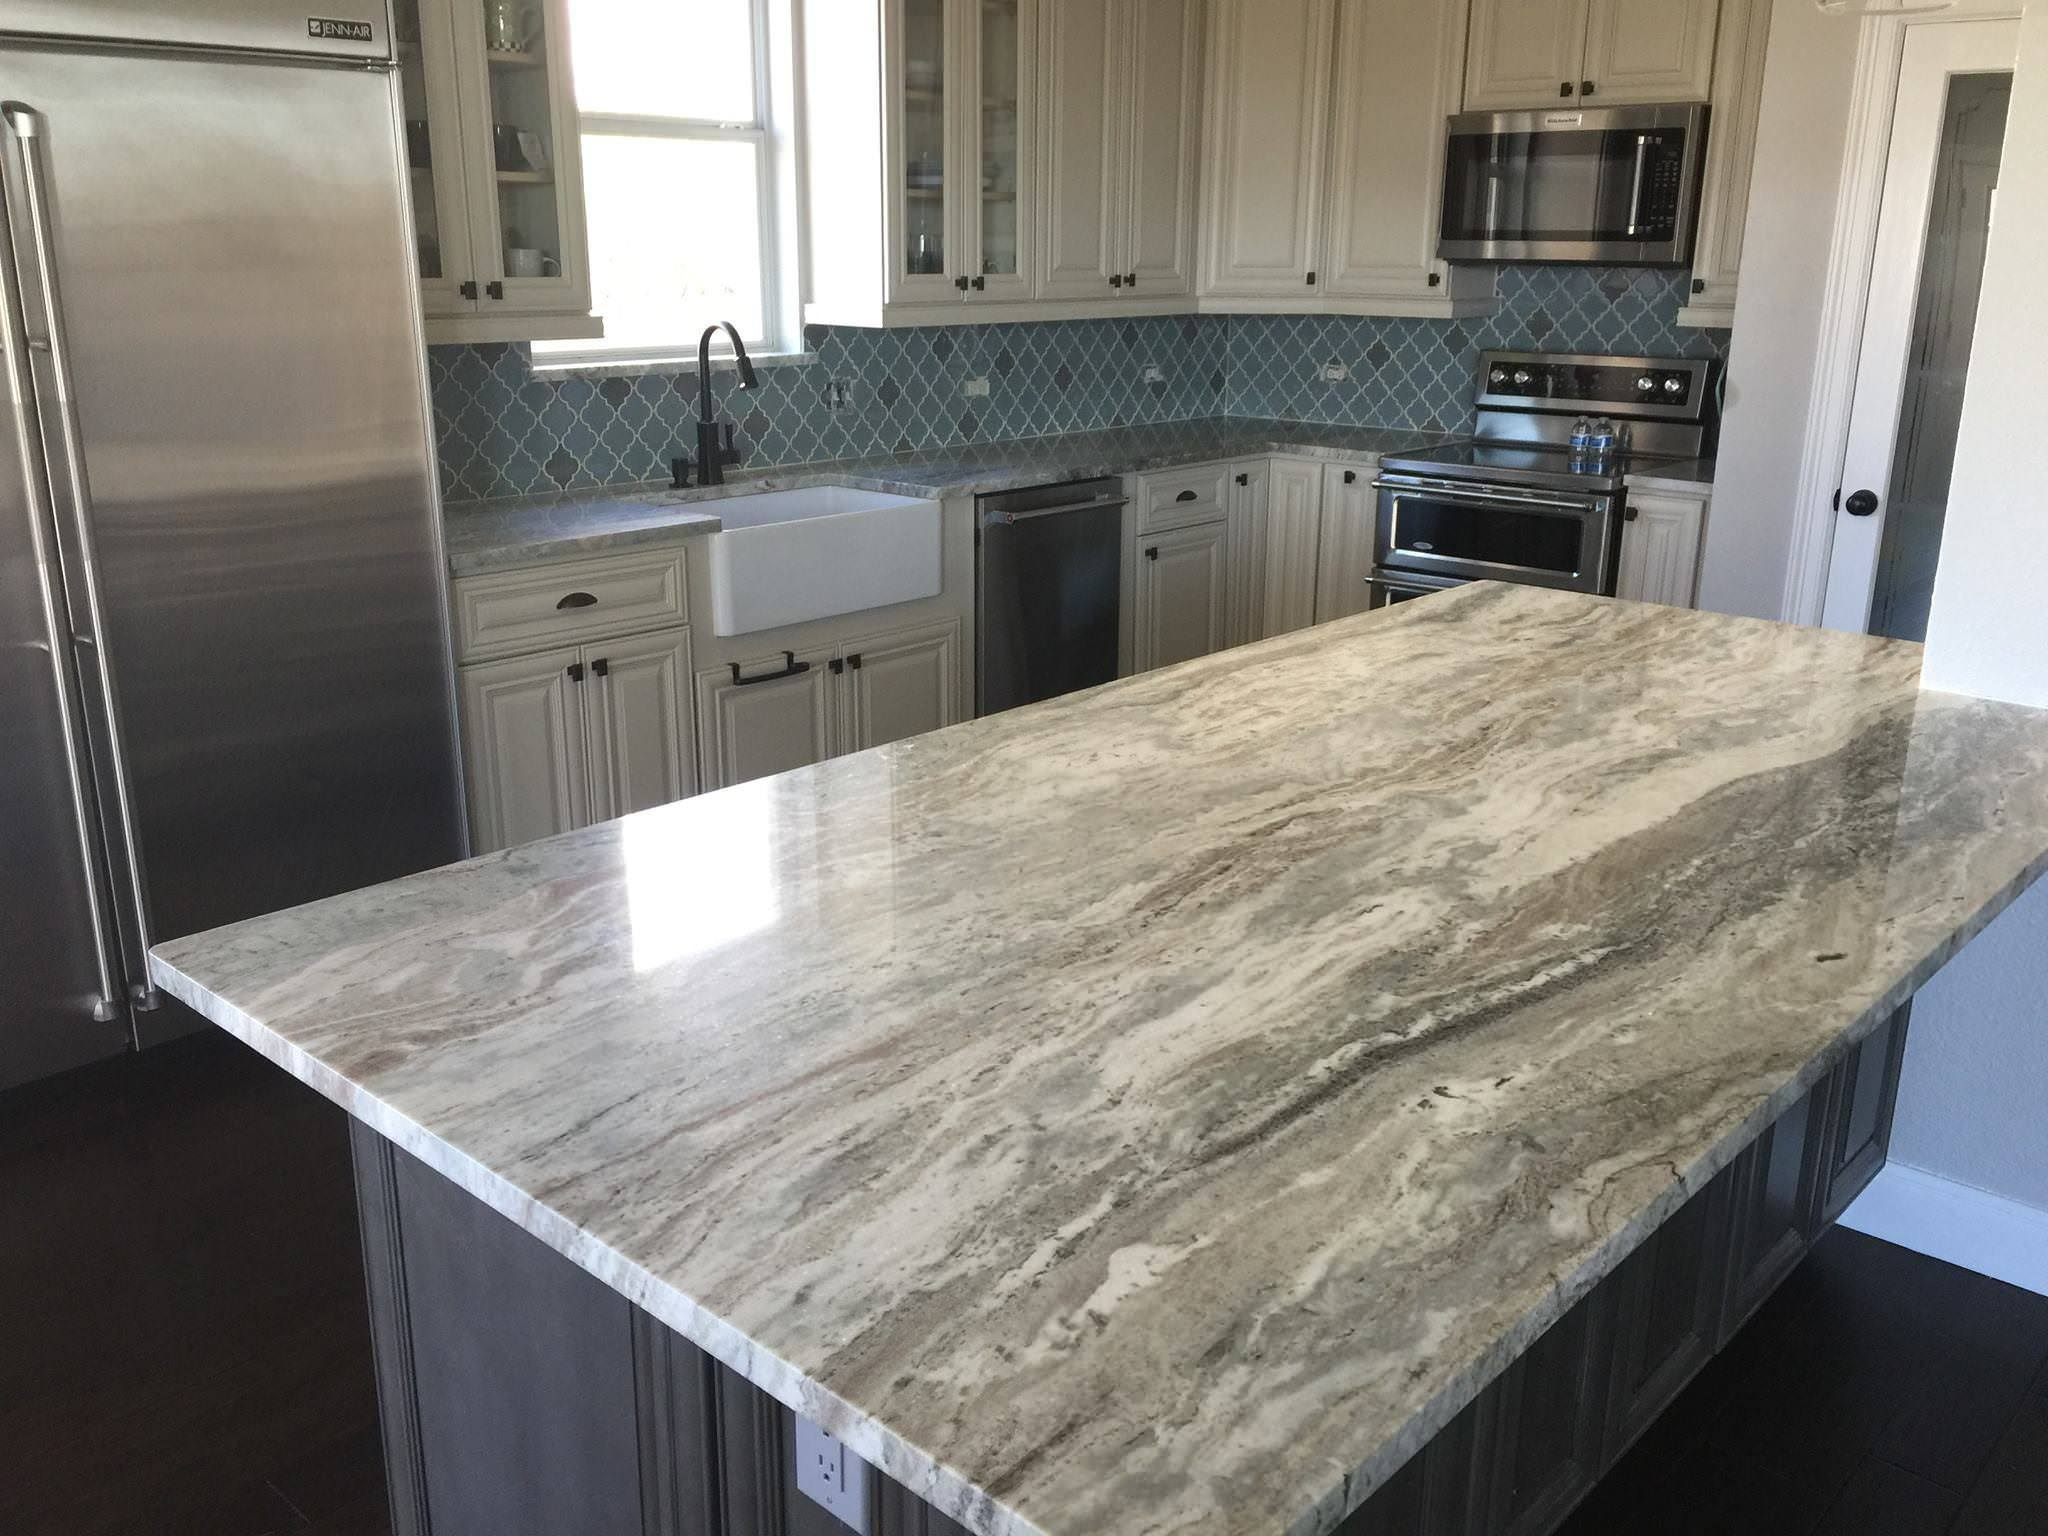 granite countertops home depot Best of Kitchen Cabinet Finishing